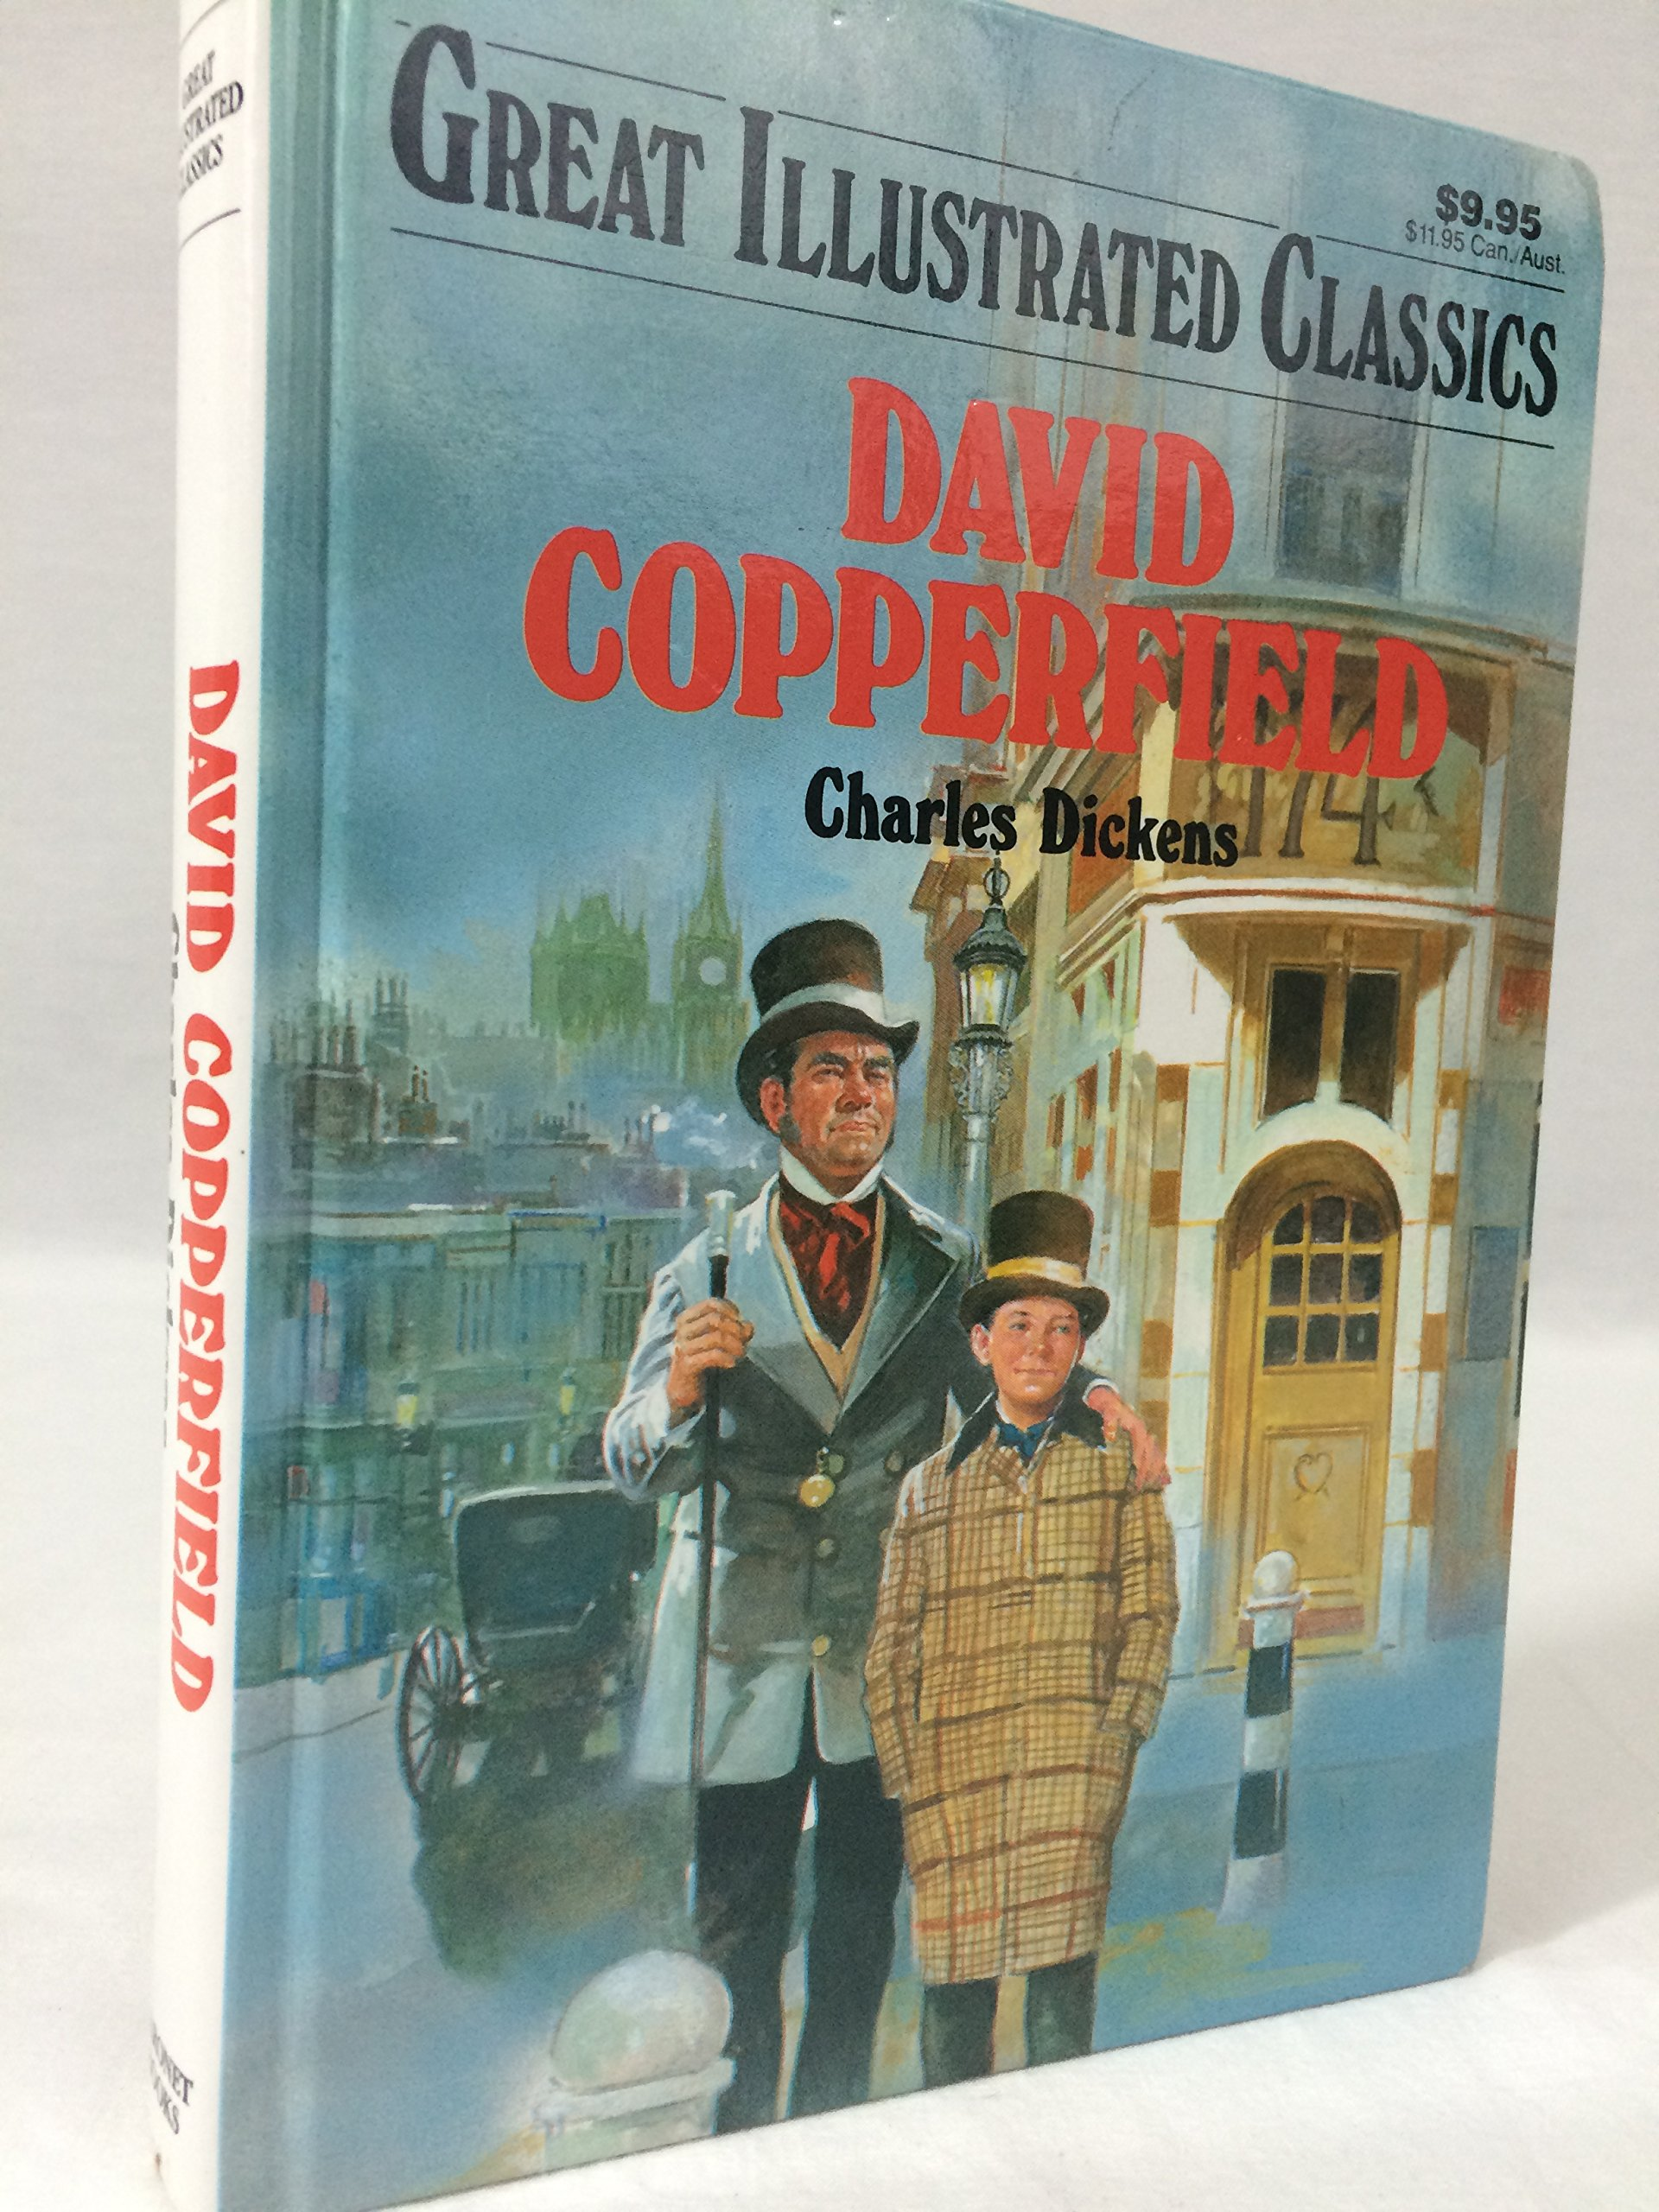 summary of the novel david copperfield david copperfield summary  david copperfield great illustrated classics malvina g vogel david copperfield great illustrated classics malvina g vogel